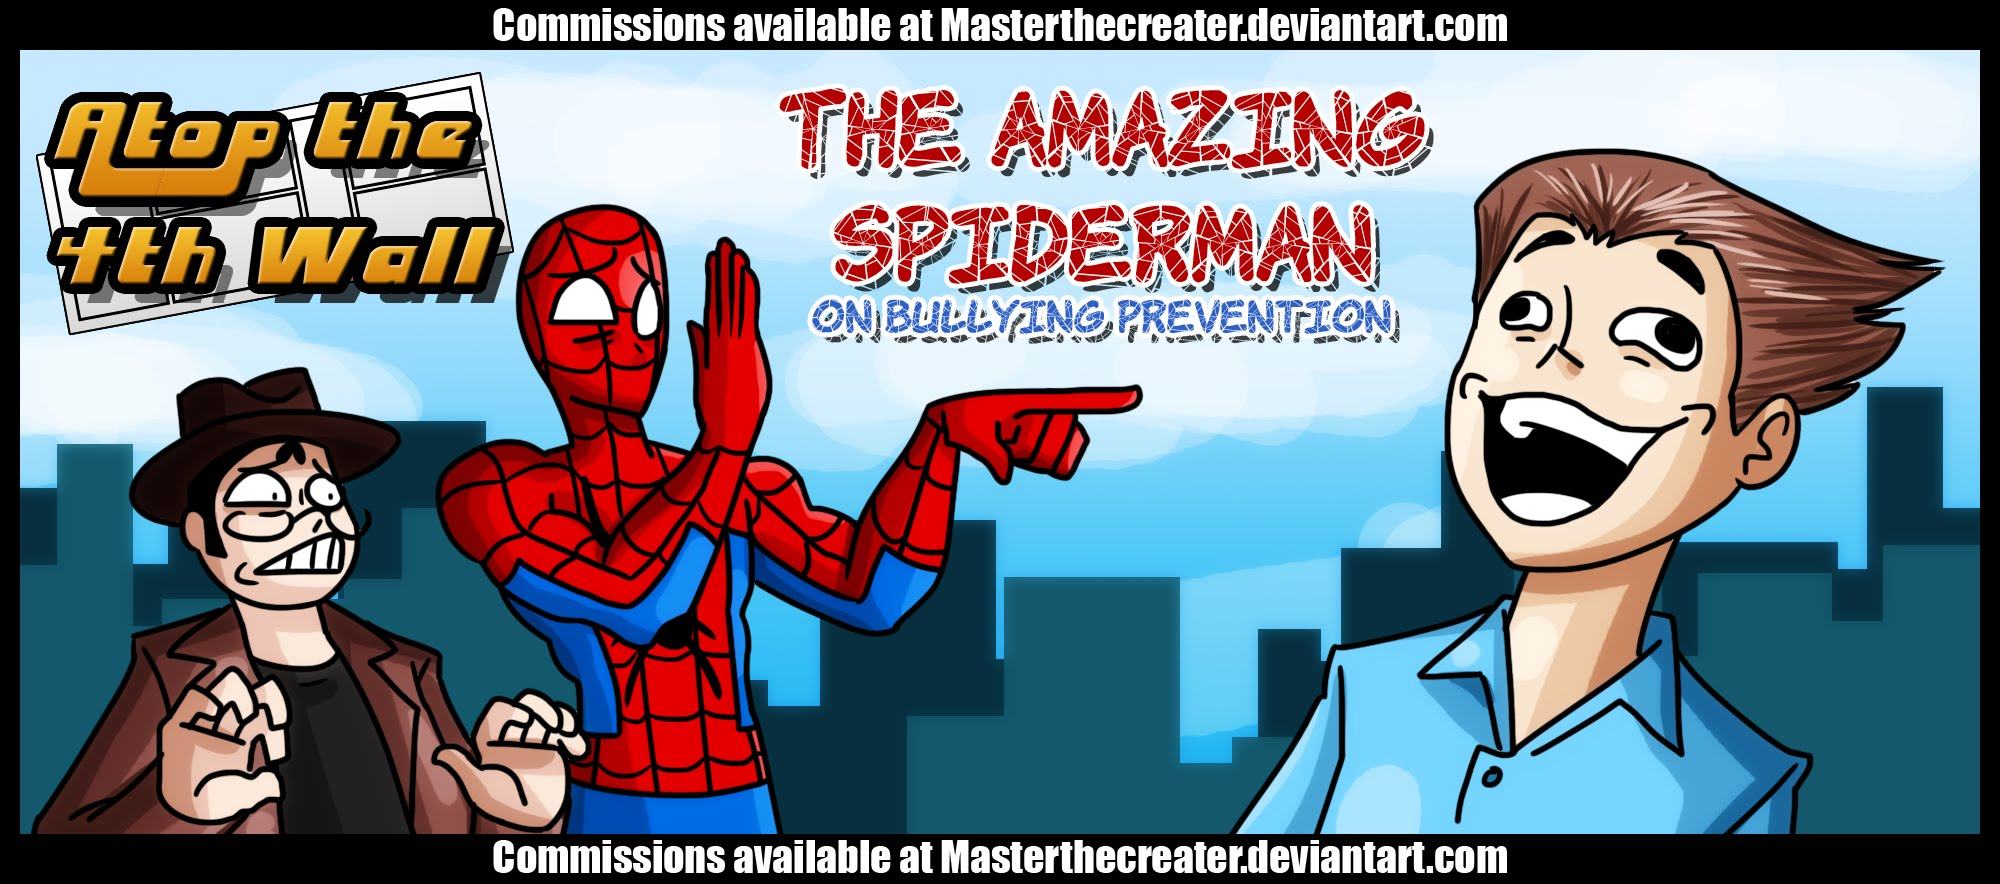 The Amazing Spider-Man on Bullying Prevention 1